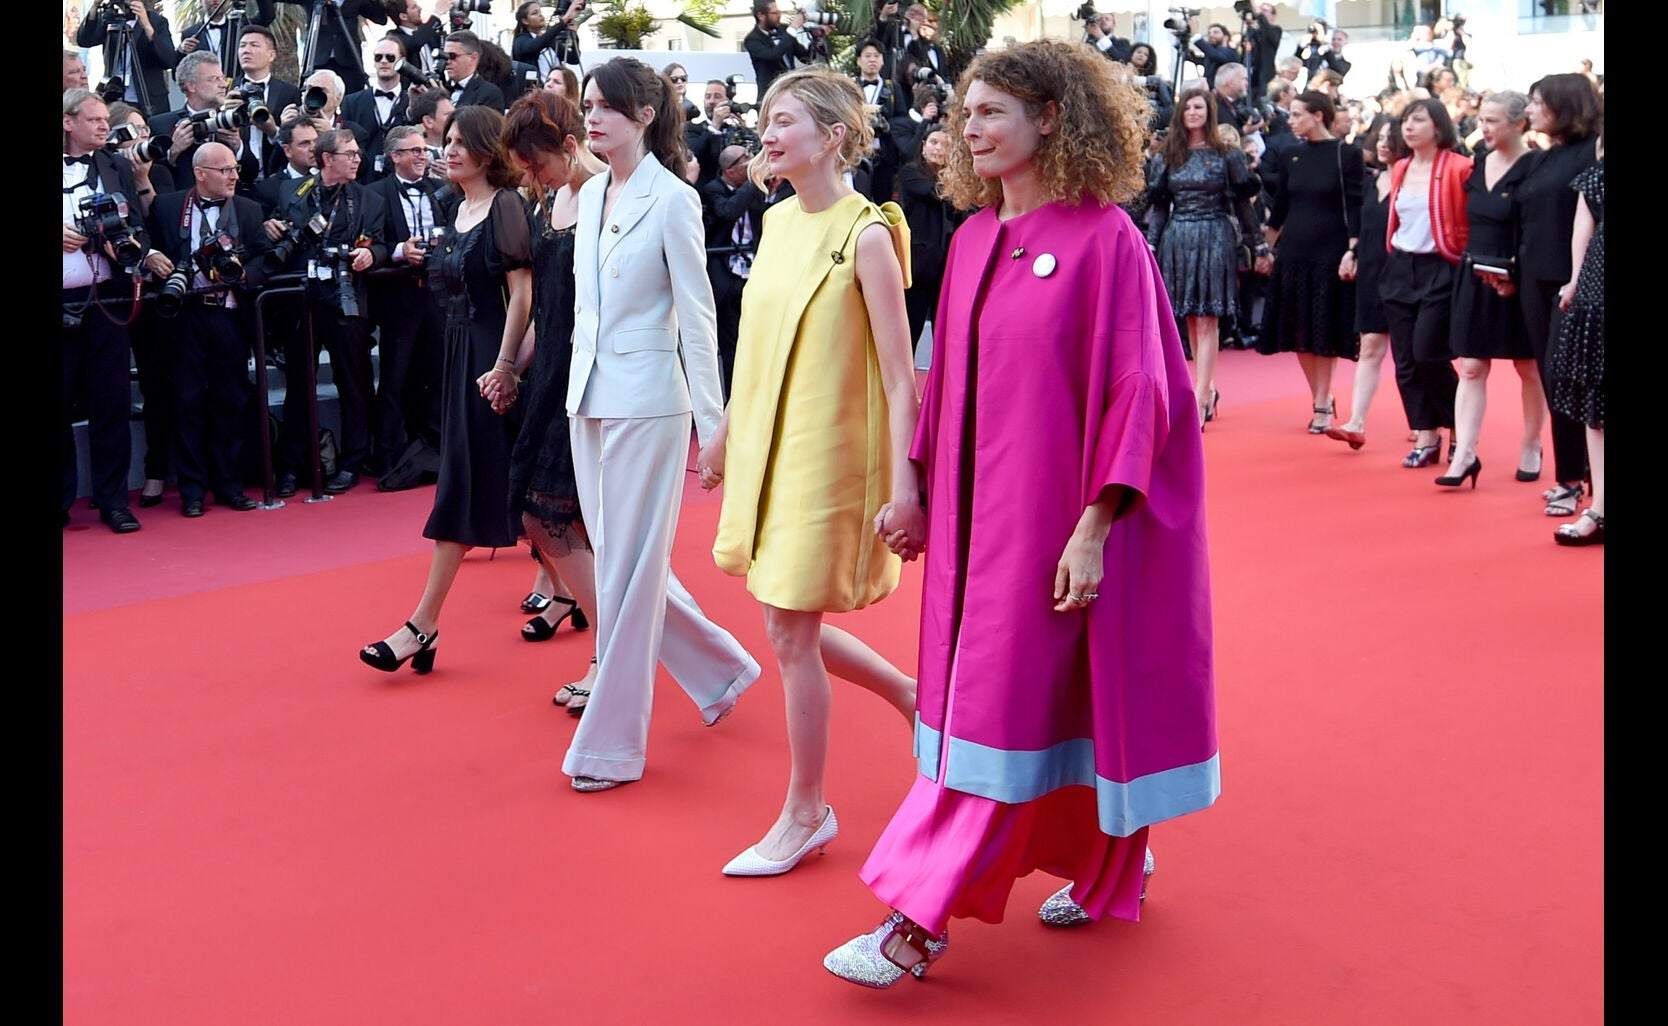 Alba Rohrwacher (2nd R) and Ginevra Elkann (R) at 71st annual Cannes Film Festival